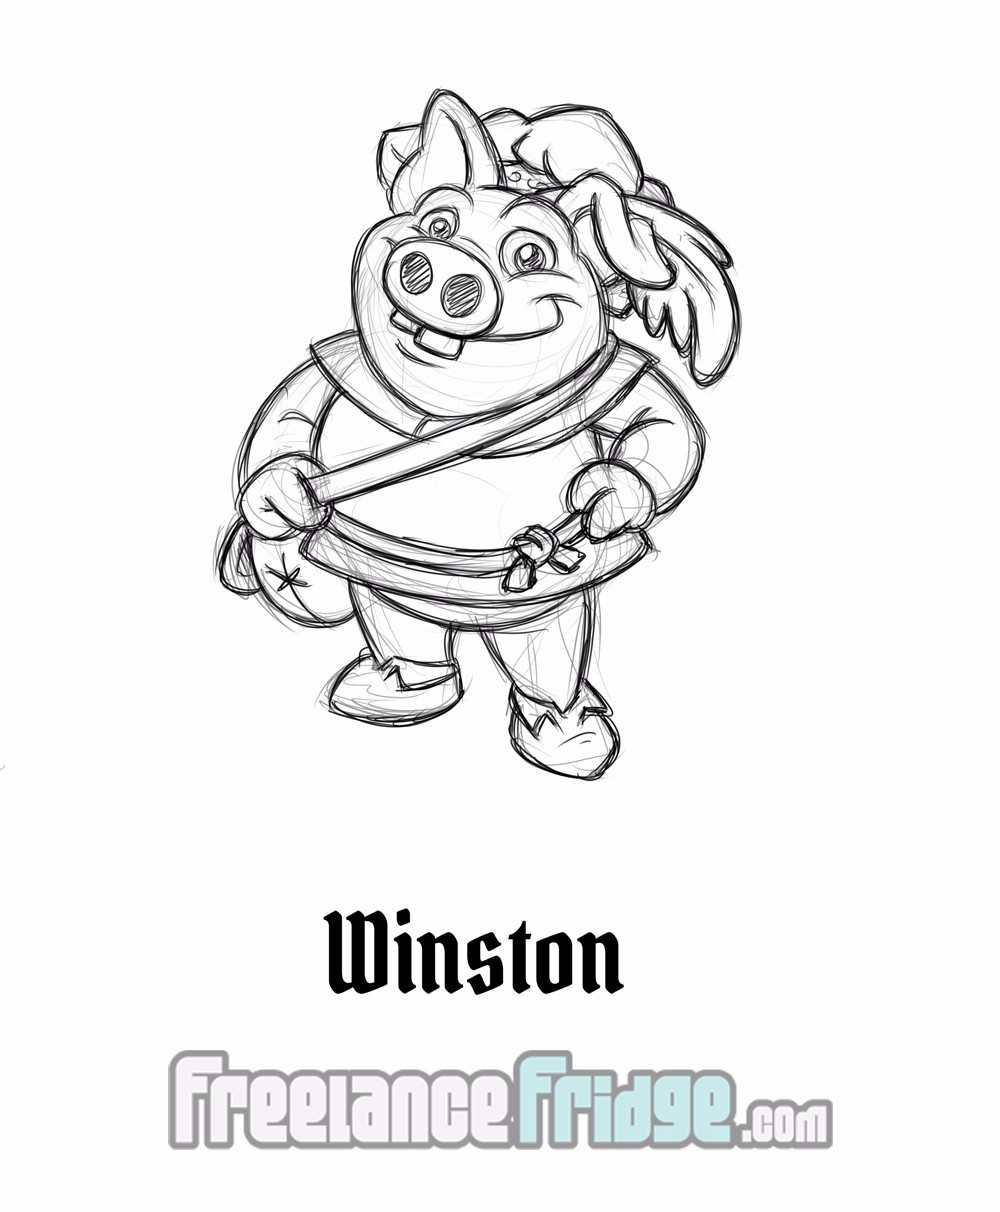 Fairy Tale Fantasy Character Sketch Concept Pig Winston for Comic Book